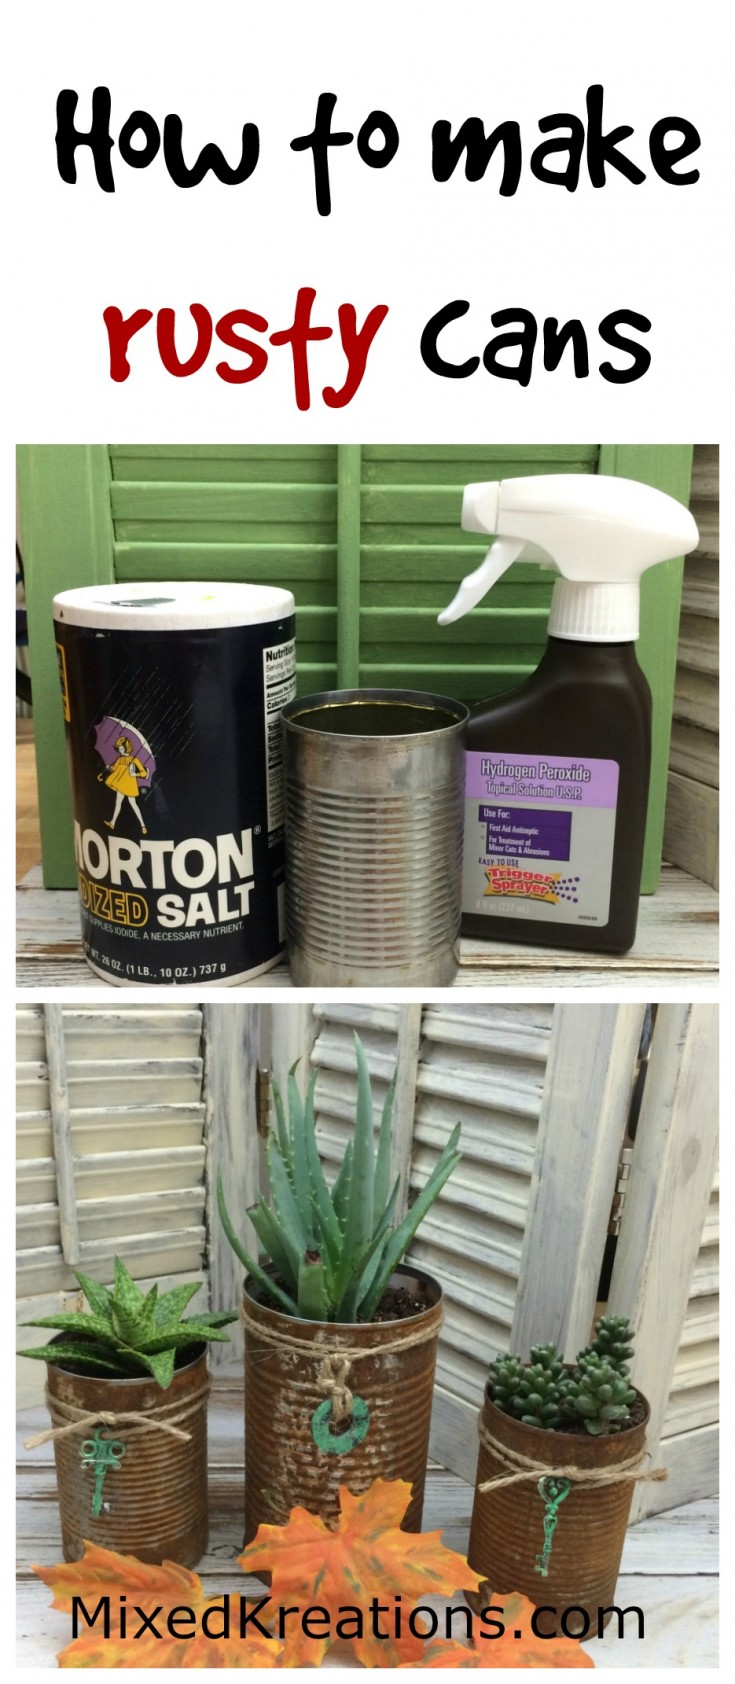 How to make rusty cans   diy rusty cans   repurposed empty cans #upcycled #repurposed #TinCans #RustyCans #RustCans MixedKreations.com